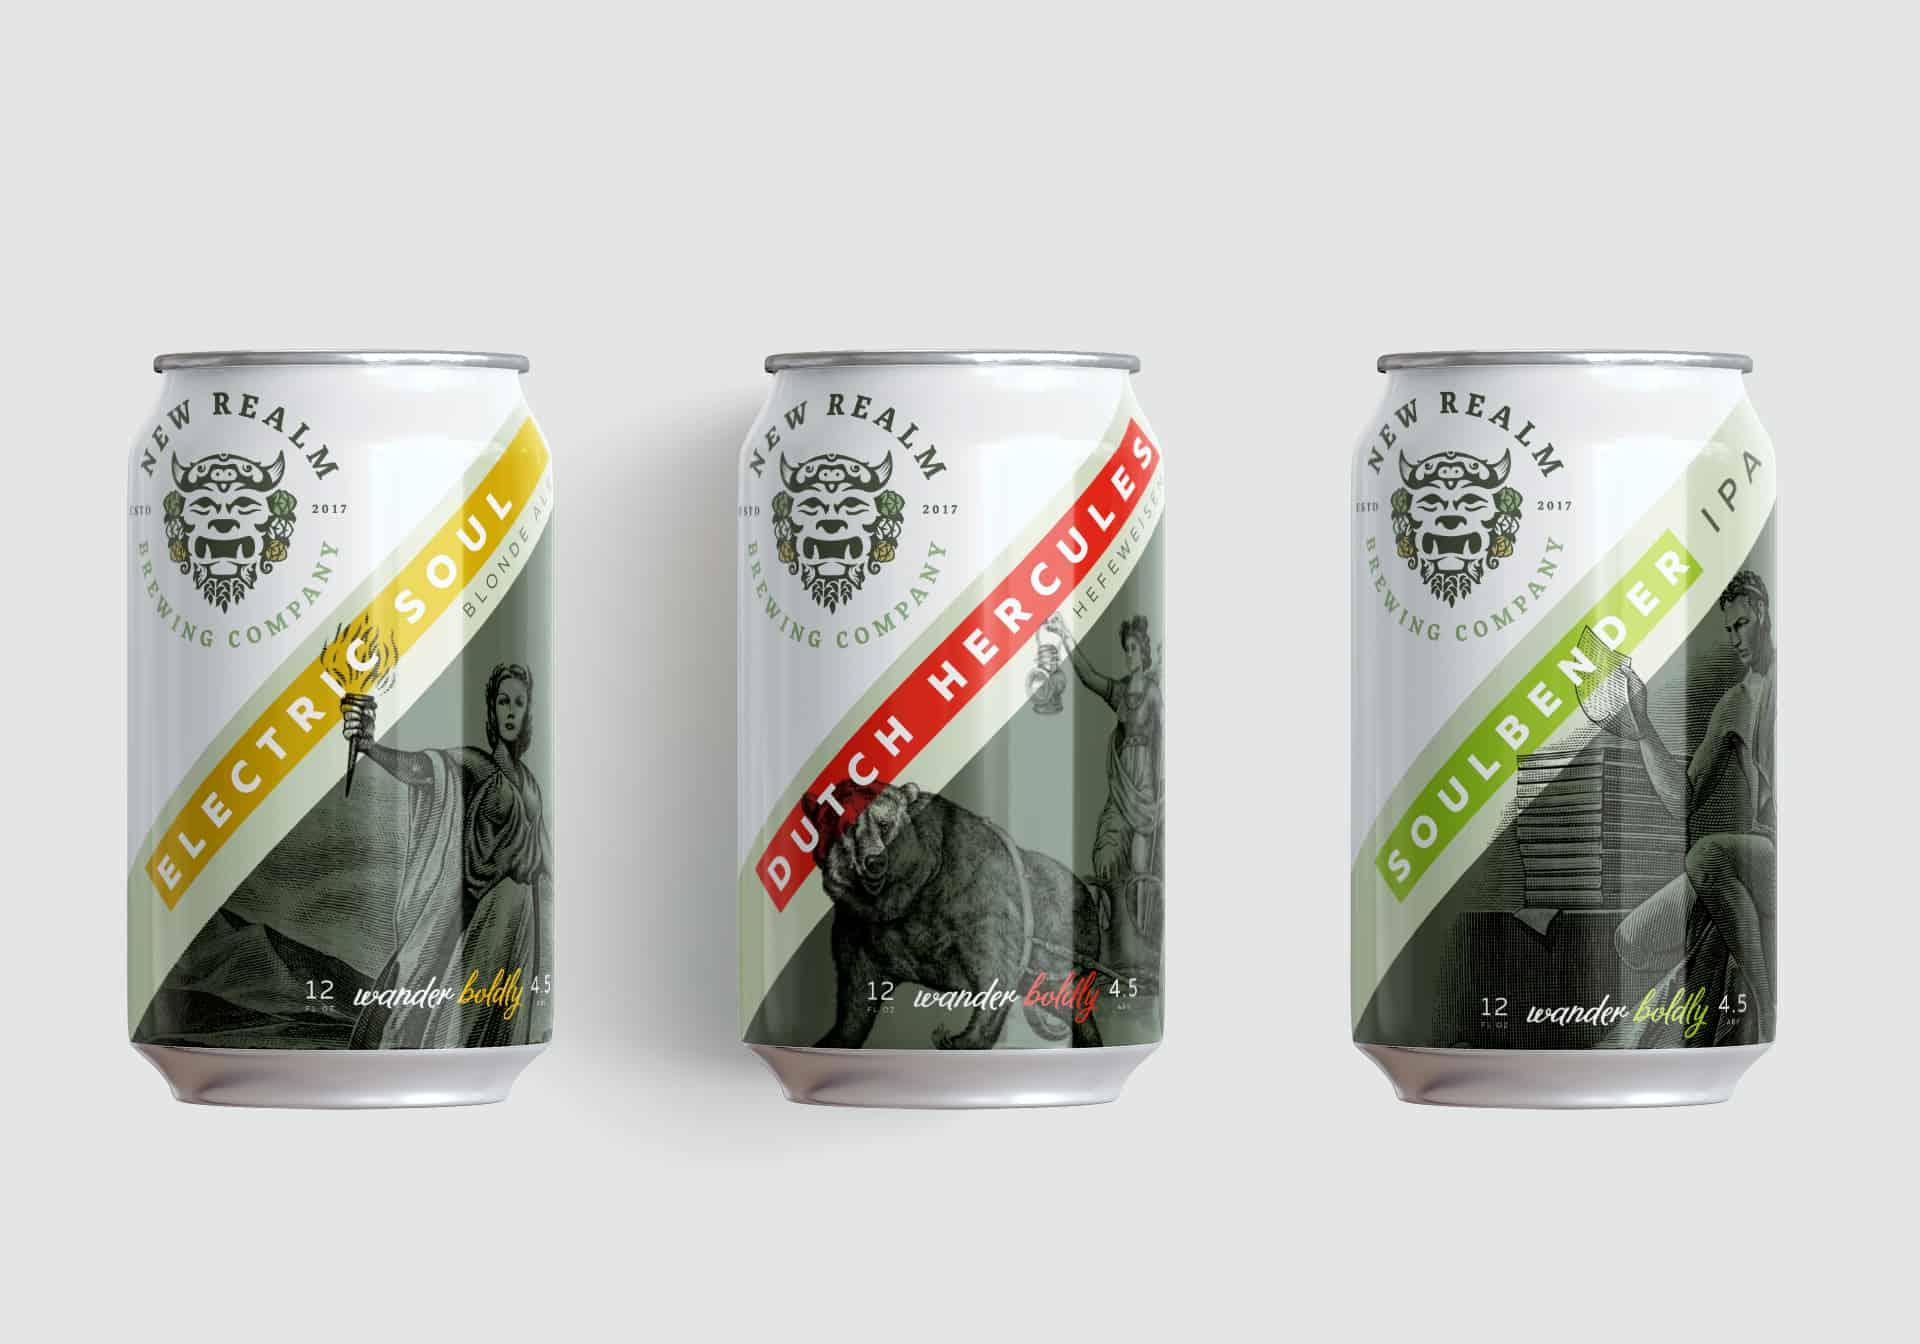 New Realm Brewing branding, naming, and package design for craft beer packaging design